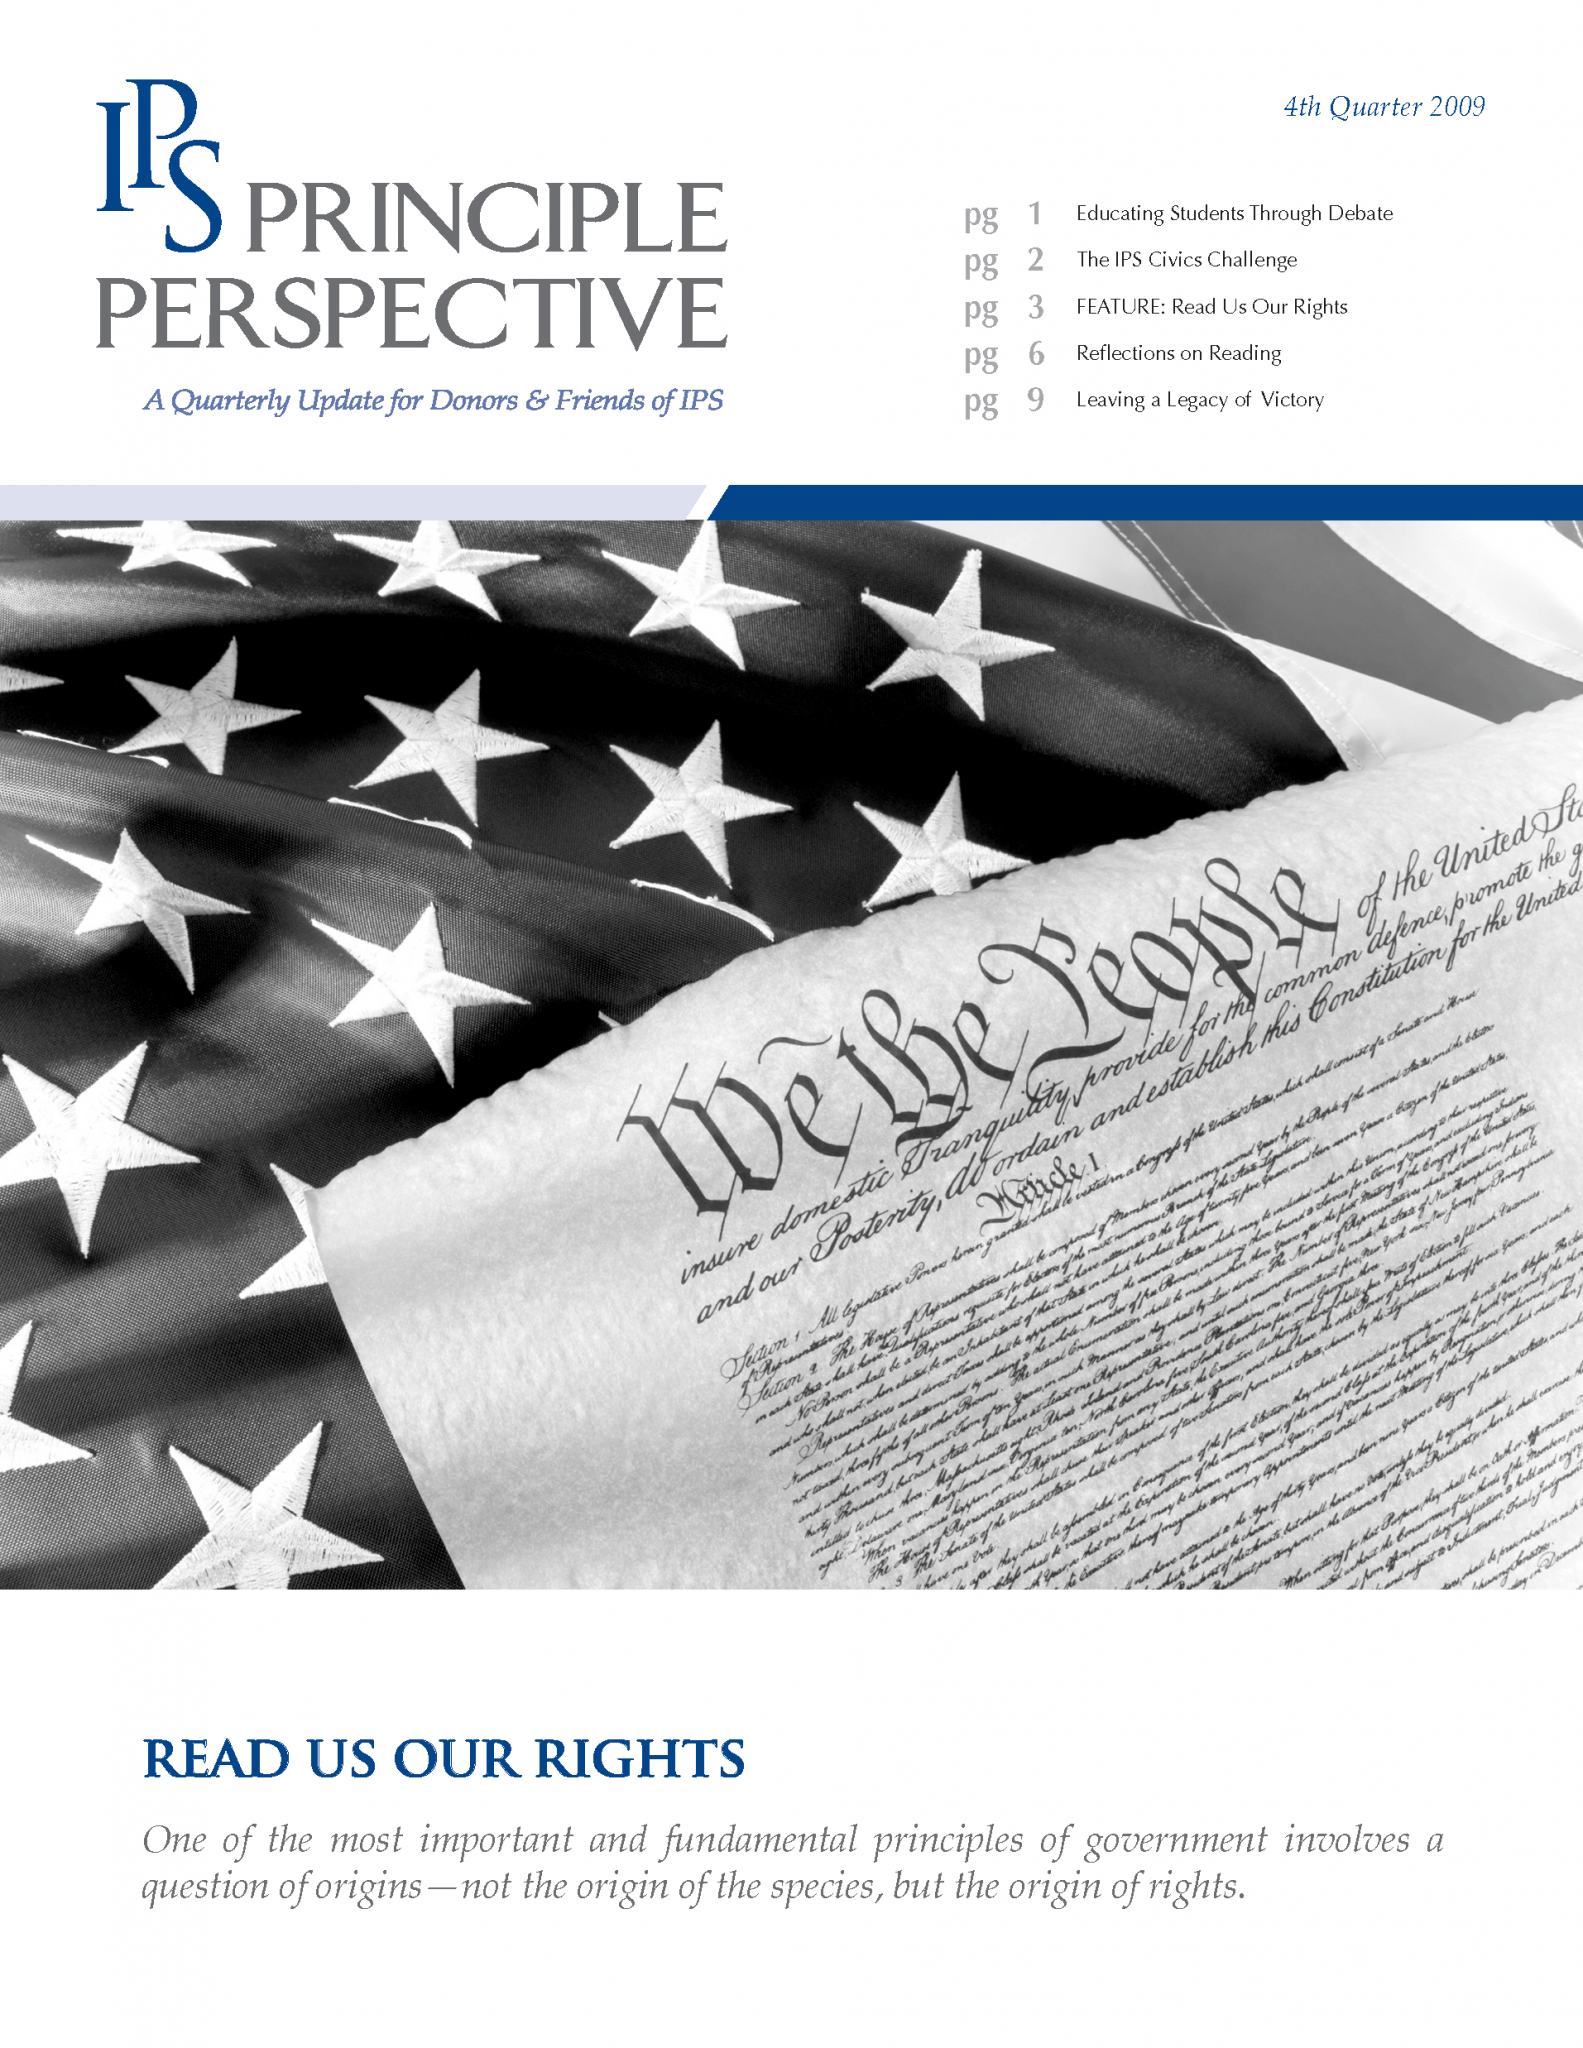 Principle Perspective - Read Us Our Rights